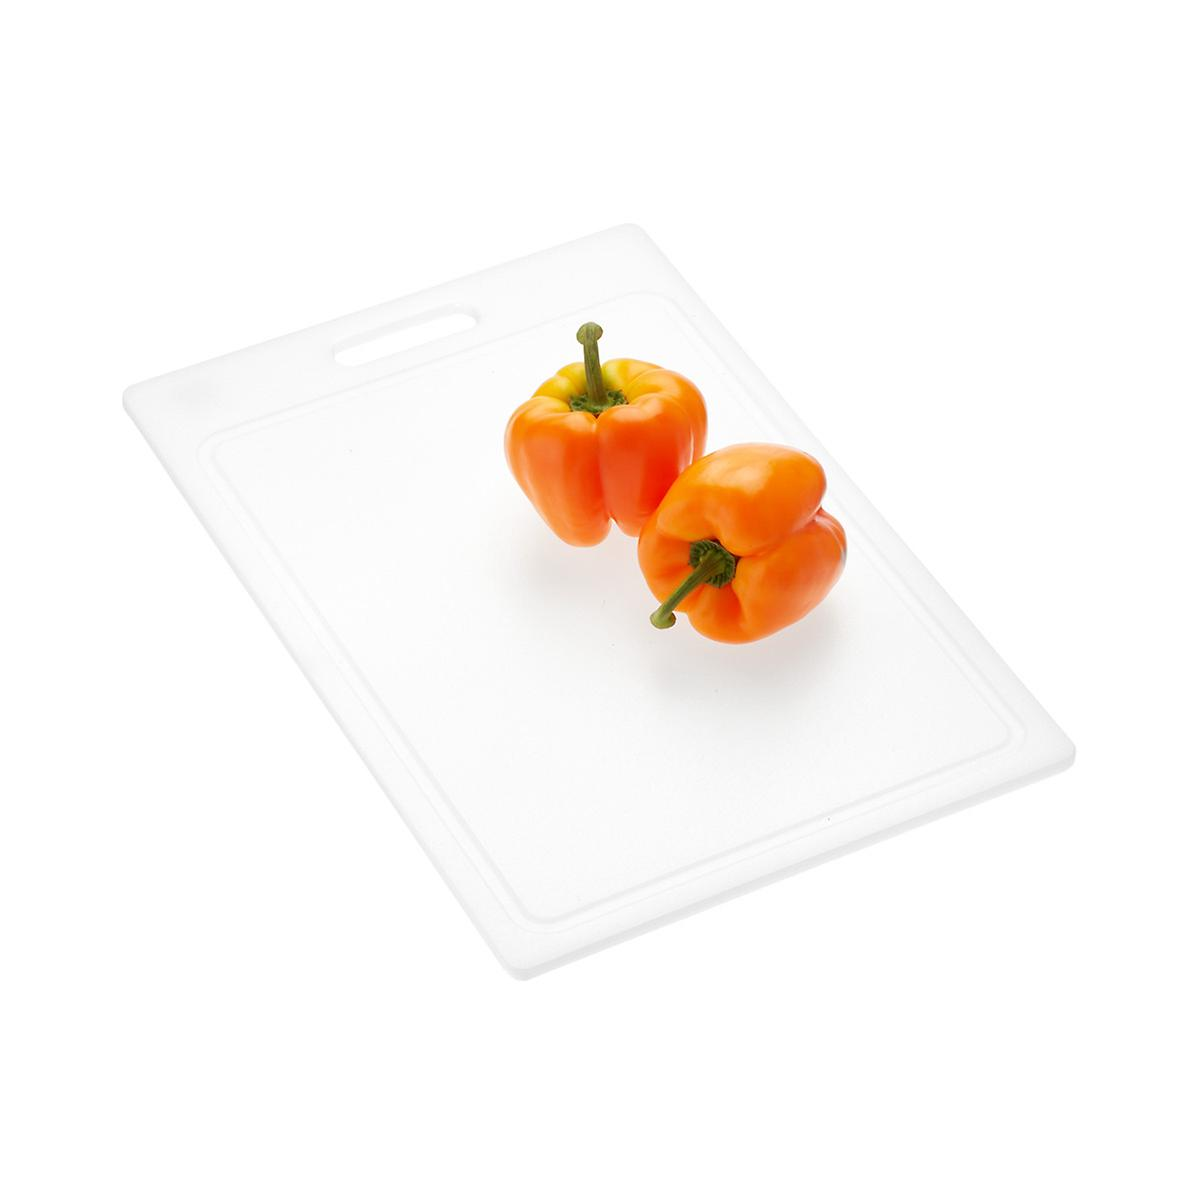 Medium Polypropylene Cutting Board